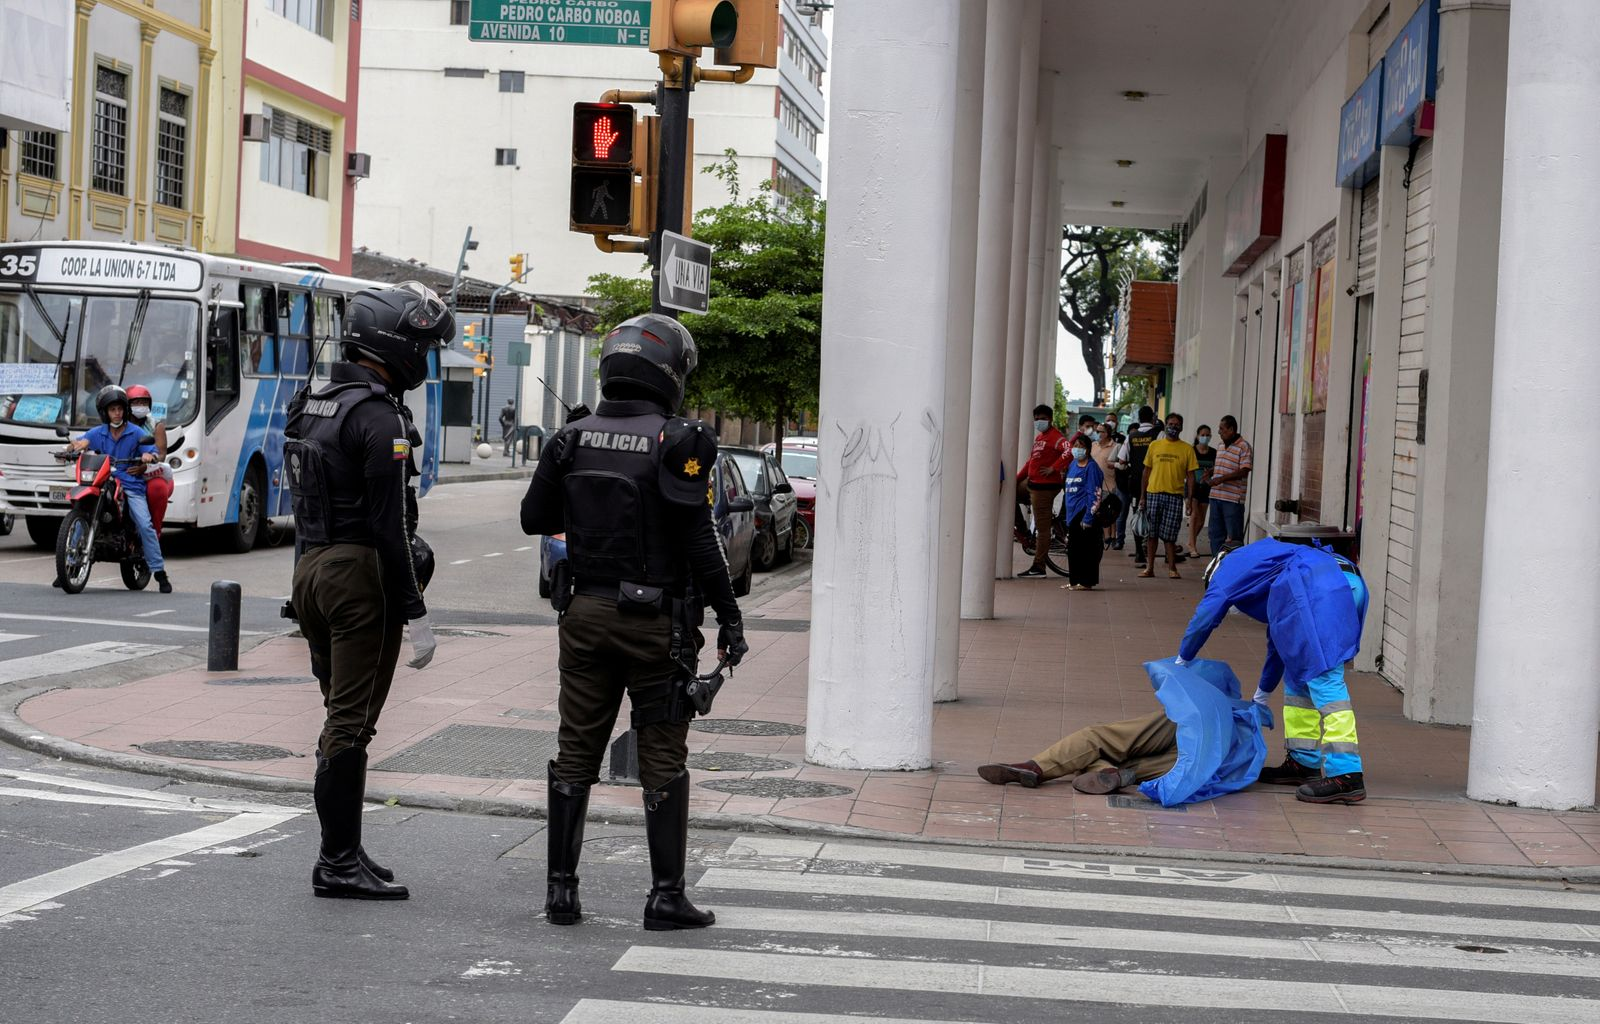 A paramedic covers the dead body of a man who had collapsed on the sidewalk, during the outbreak of the coronavirus disease (COVID-19), in Guayaquil